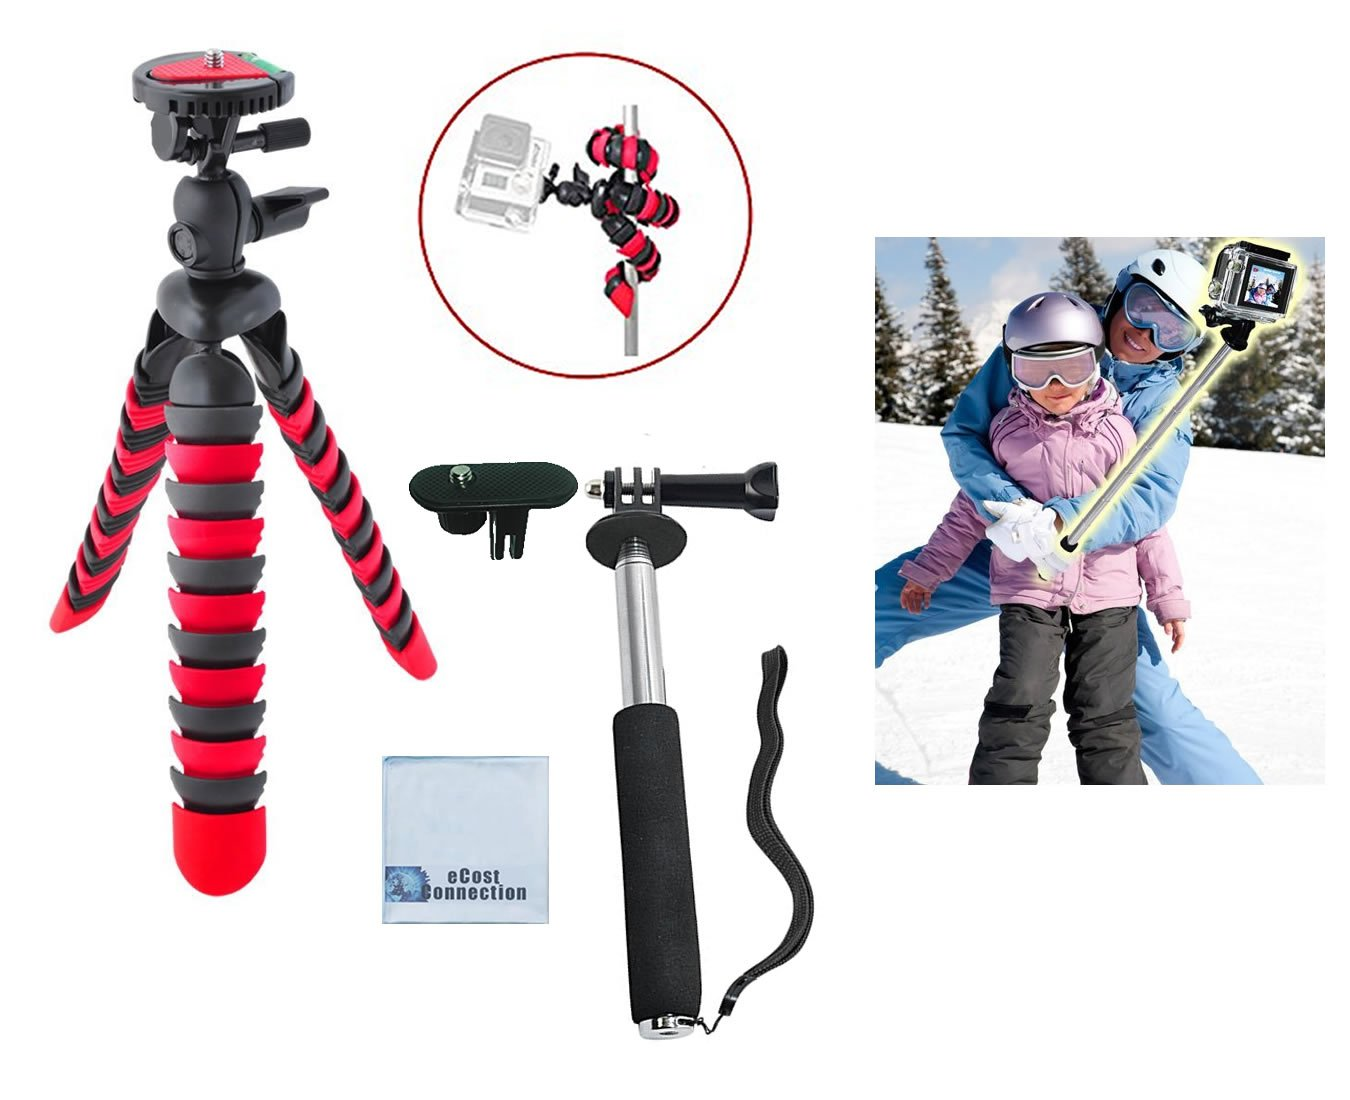 12' Inch Flexible Tripod w/ Flexible wrapable Disc Legs Red & Black with Quick Release Plate + Extension Pole 8.5' - 43' Inches (3.6 Feet) for GoPro Hero1, Hero2, Hero3, Hero3+ & Hero4 Cameras + Ecost Connection Microfiber Cloth TRIPODS